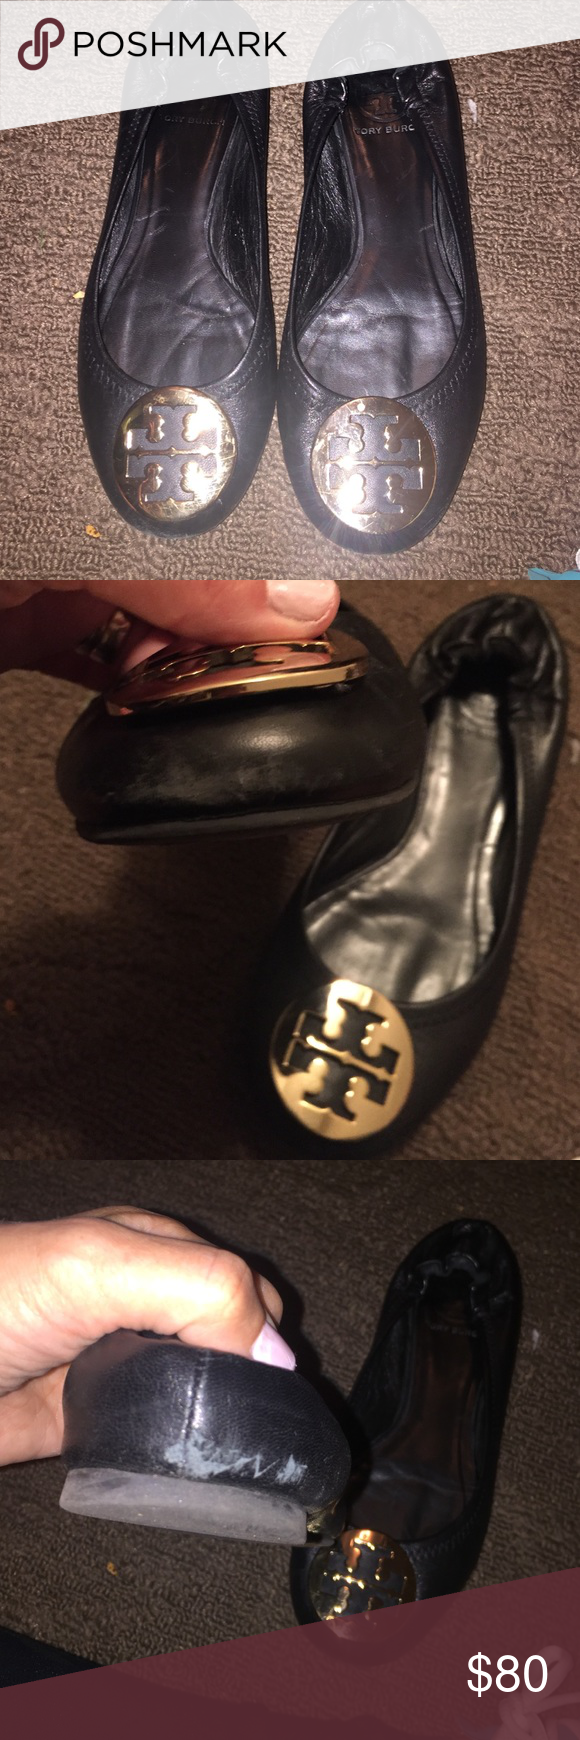 TORY BURCH REVA FLAT Worn couple of times ..some visible wear signs in the front and back. Tory Burch Other